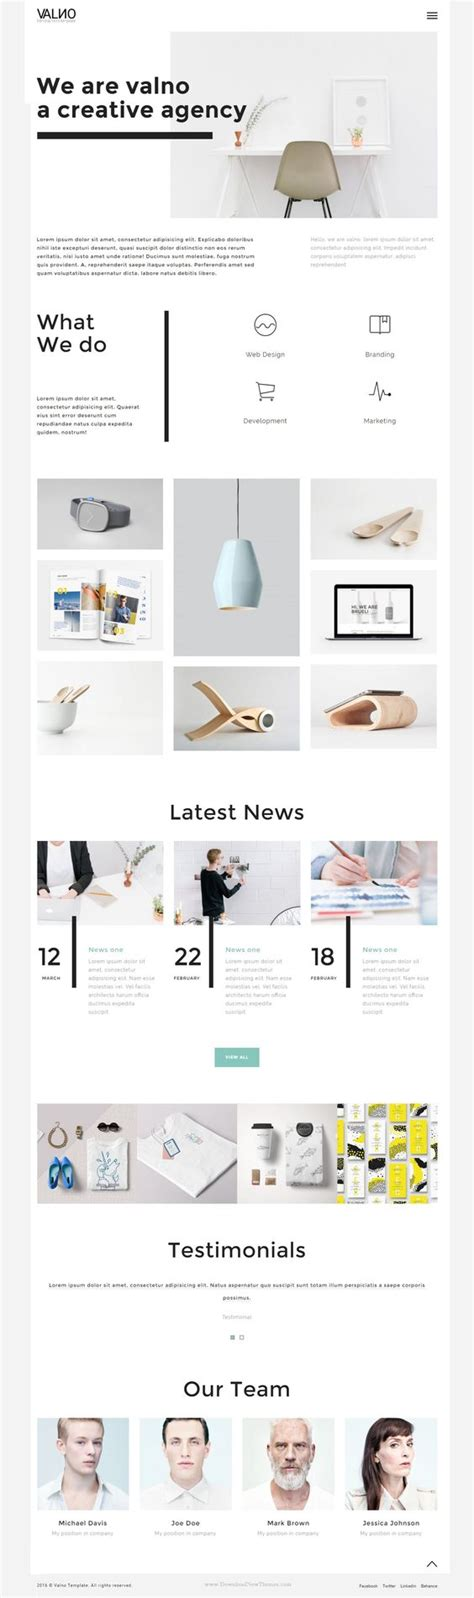 html5 css3 layout design valno minimal creative multi page portfolio template